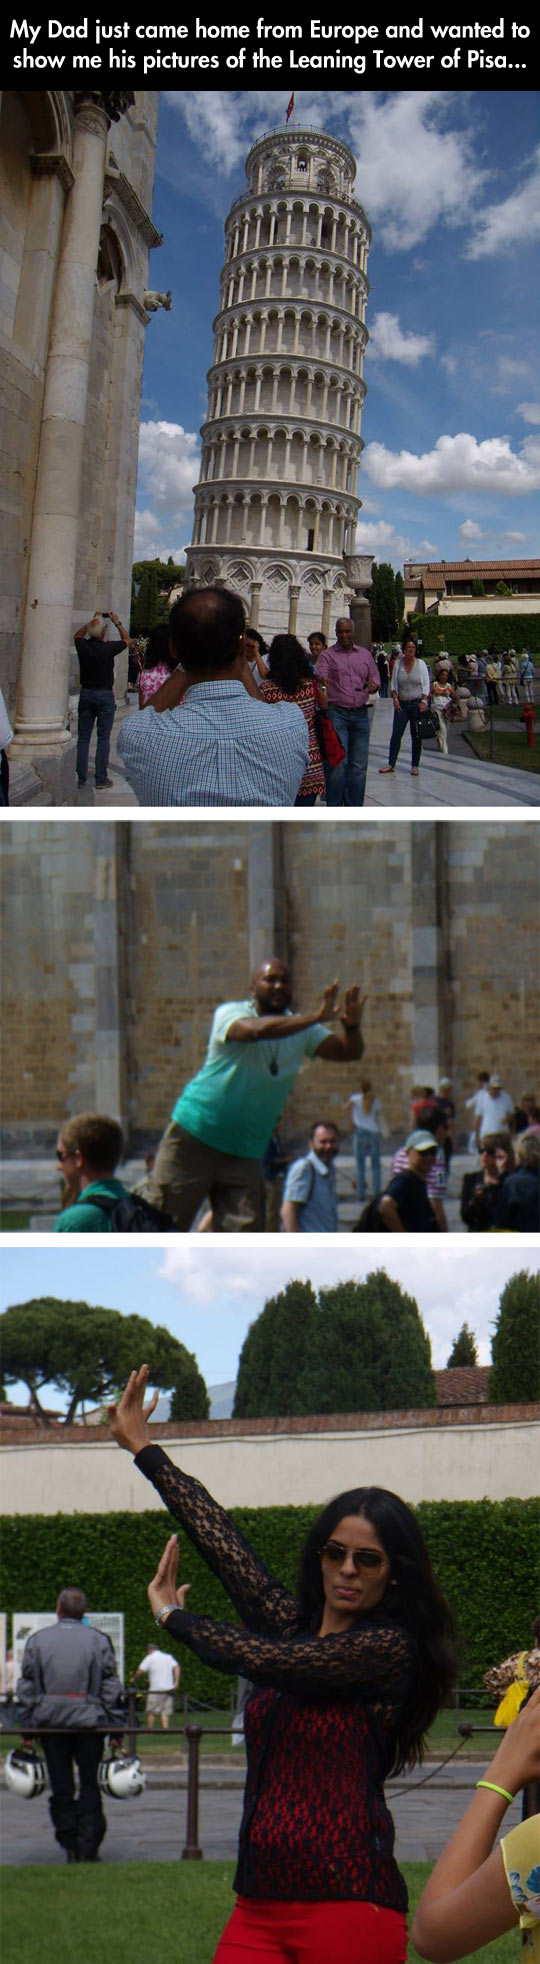 Tourist In The Leaning Tower Of Pisa